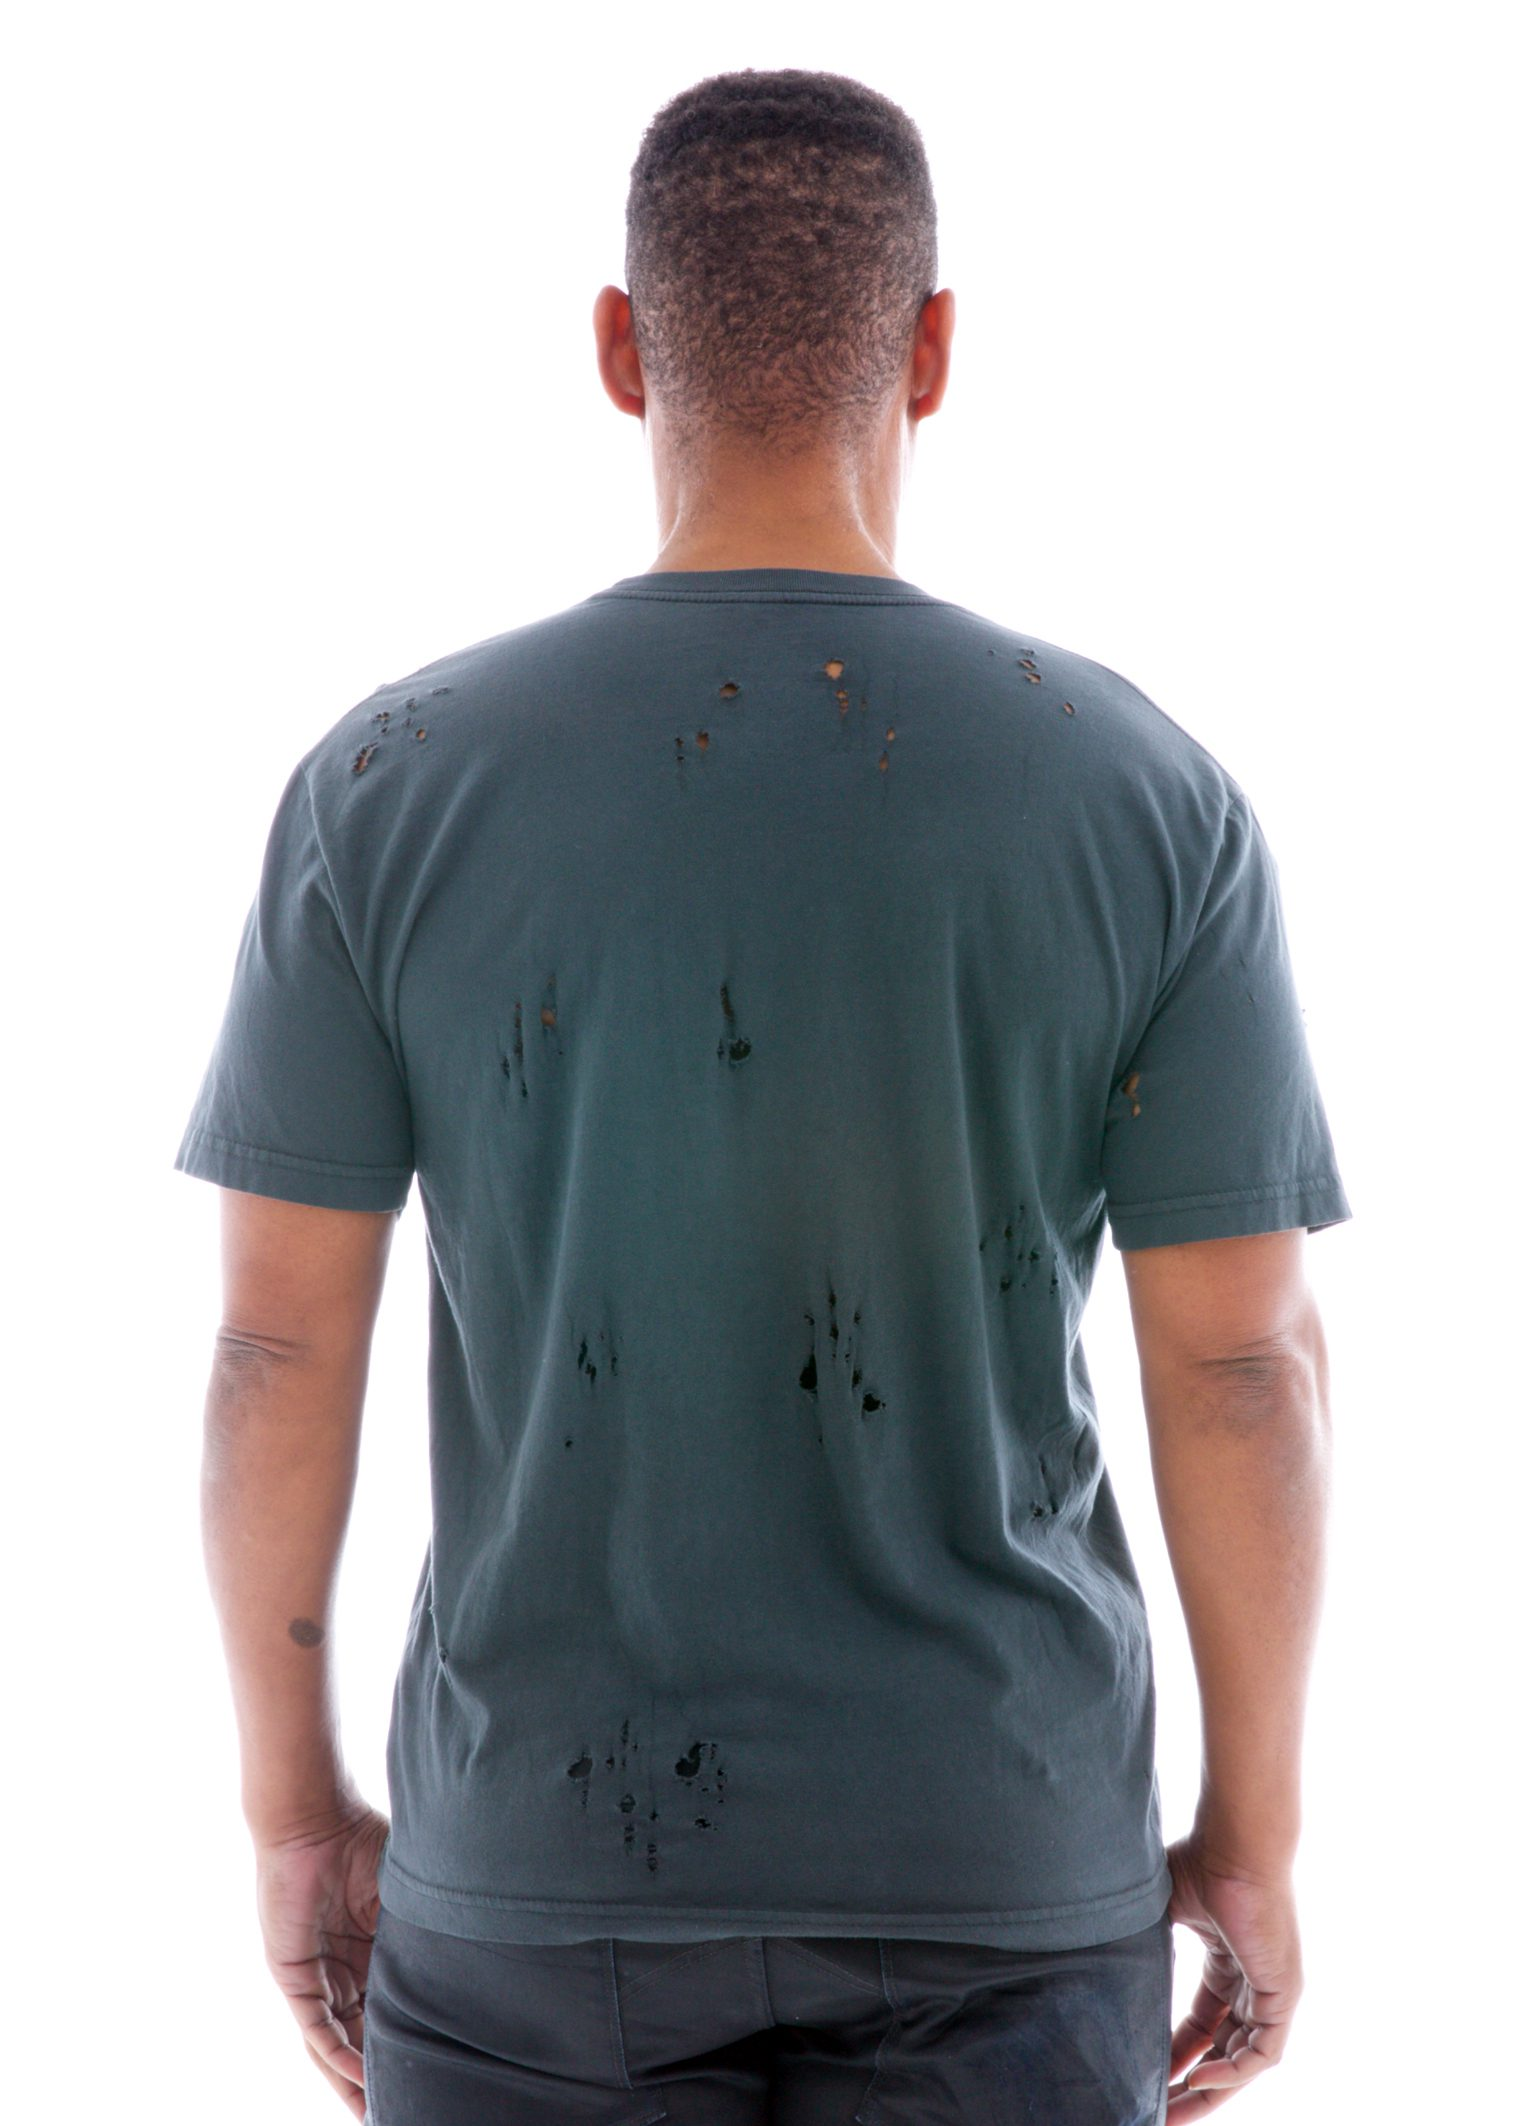 Destroyed Crew Short Sleeve T-Shirt Back View